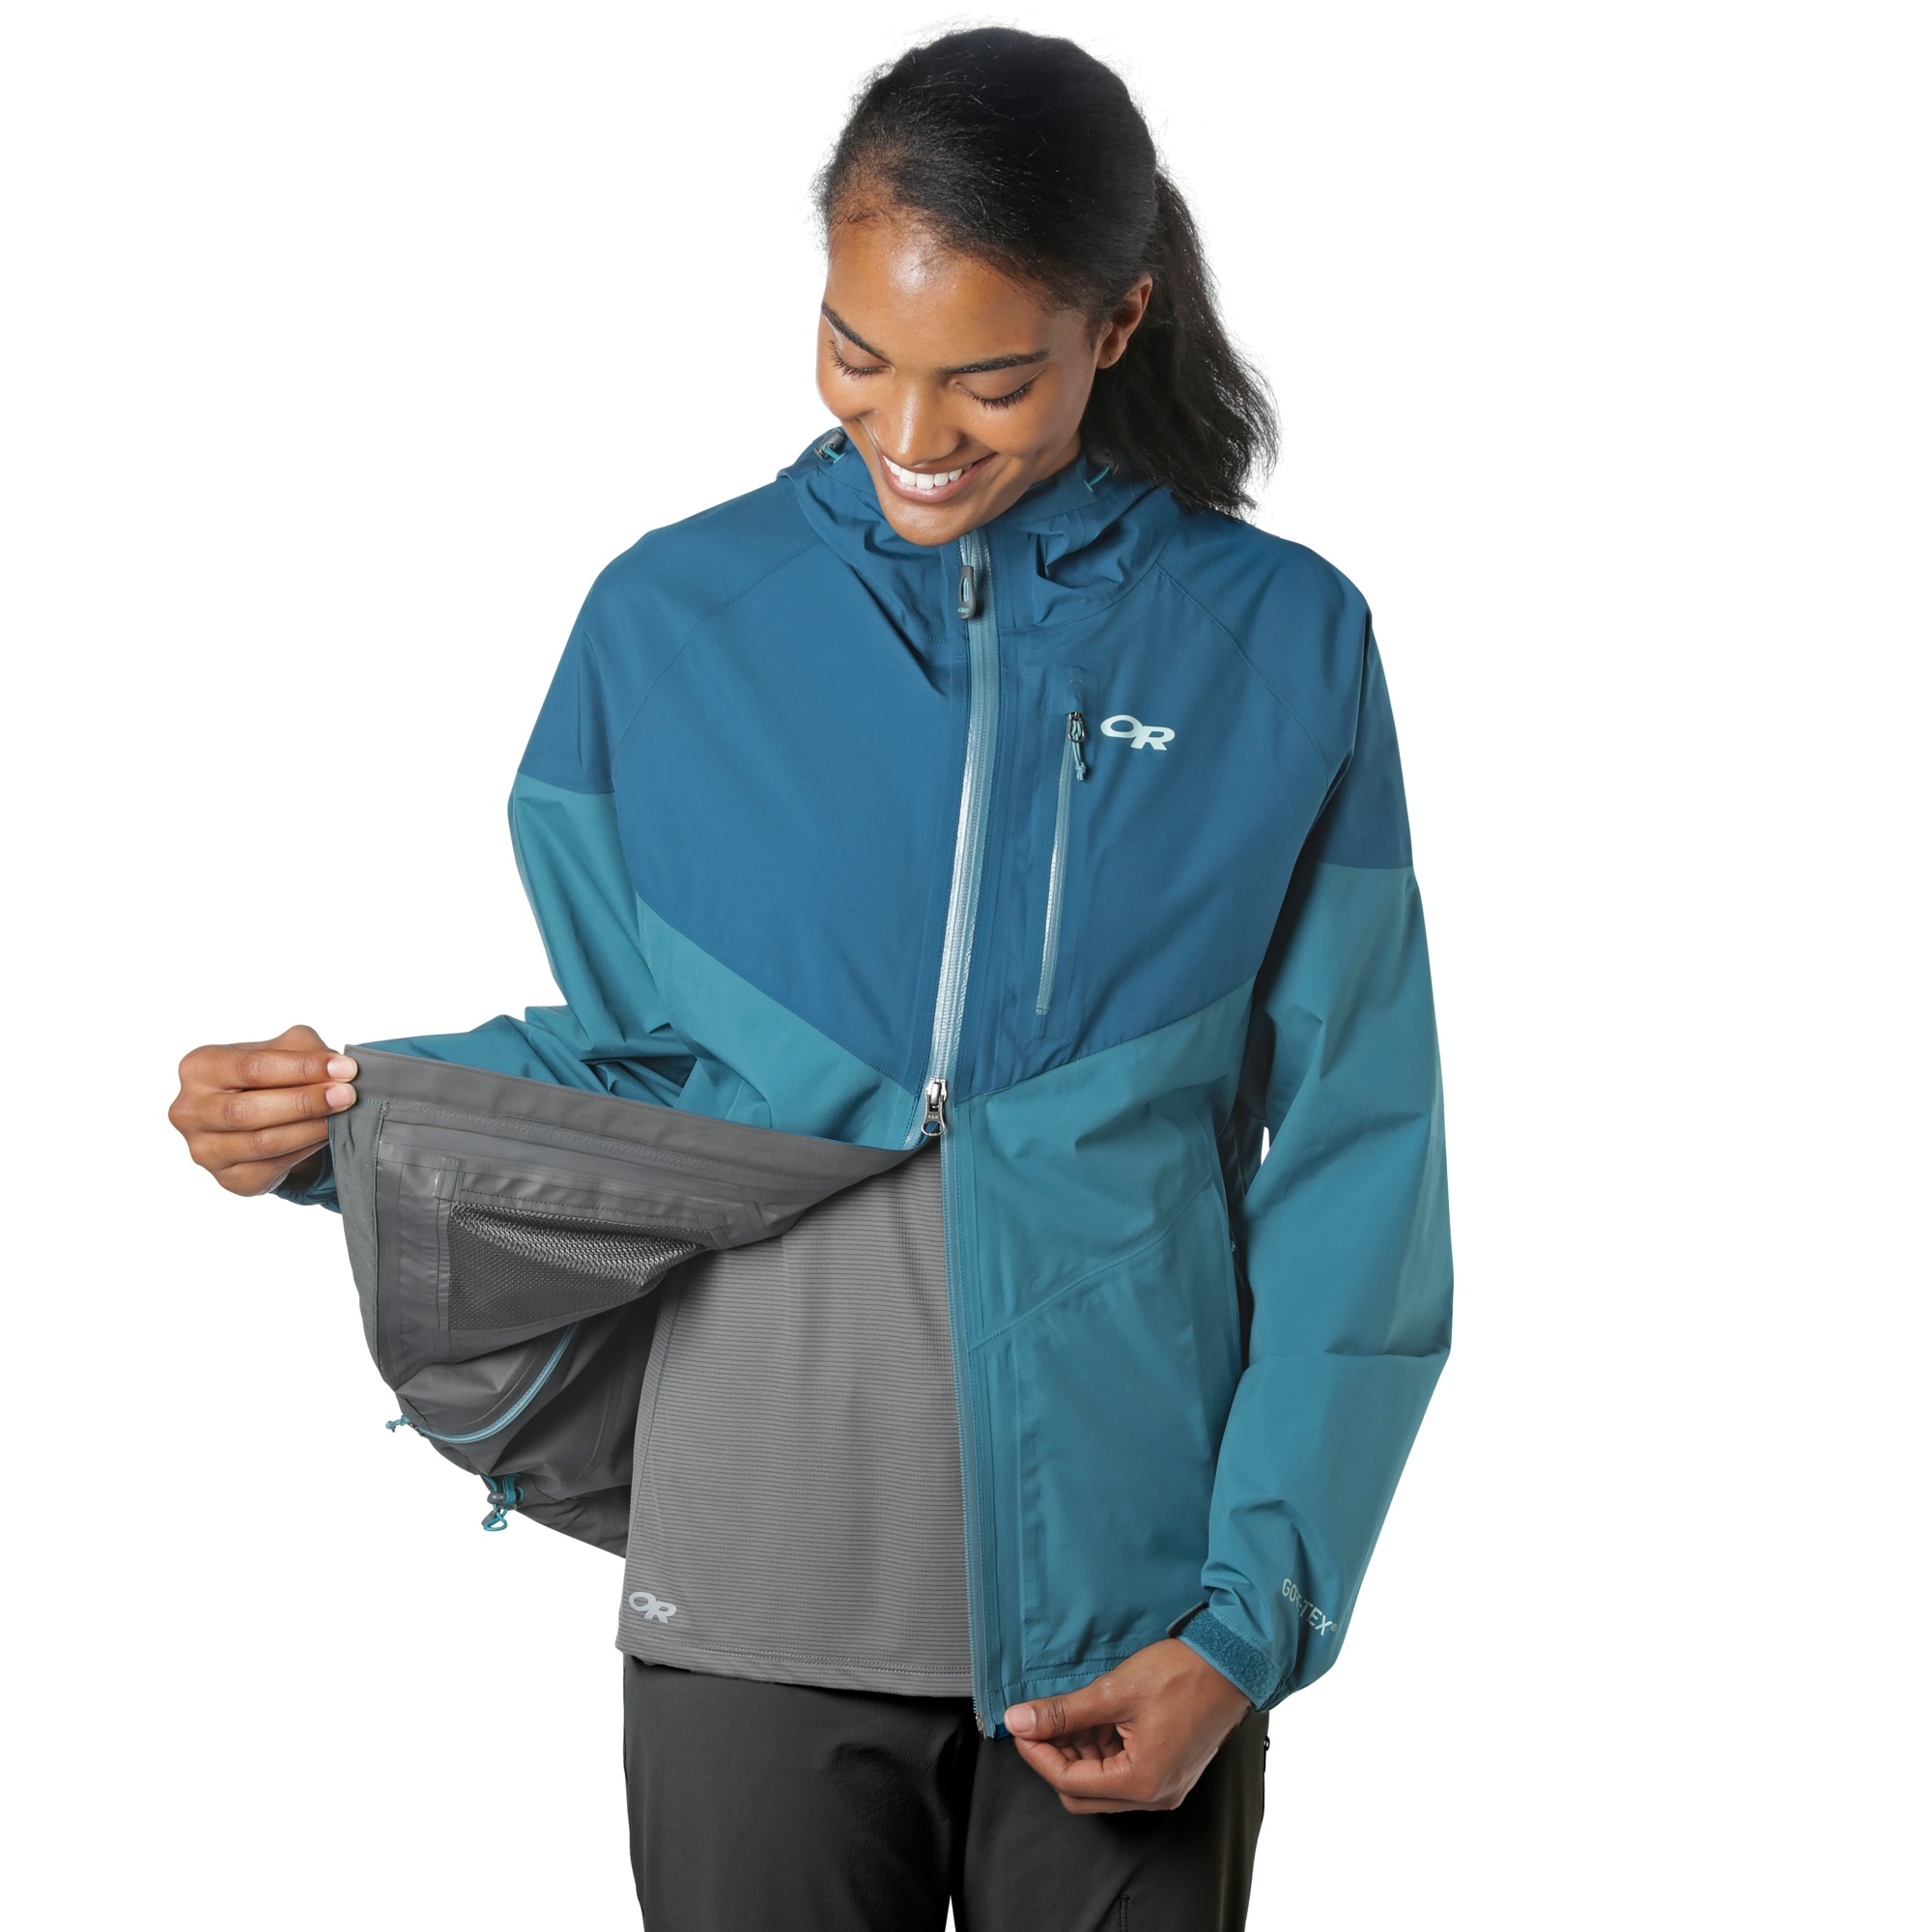 327cc45ca33 Women's Aspire Jacket - sand | Outdoor Research